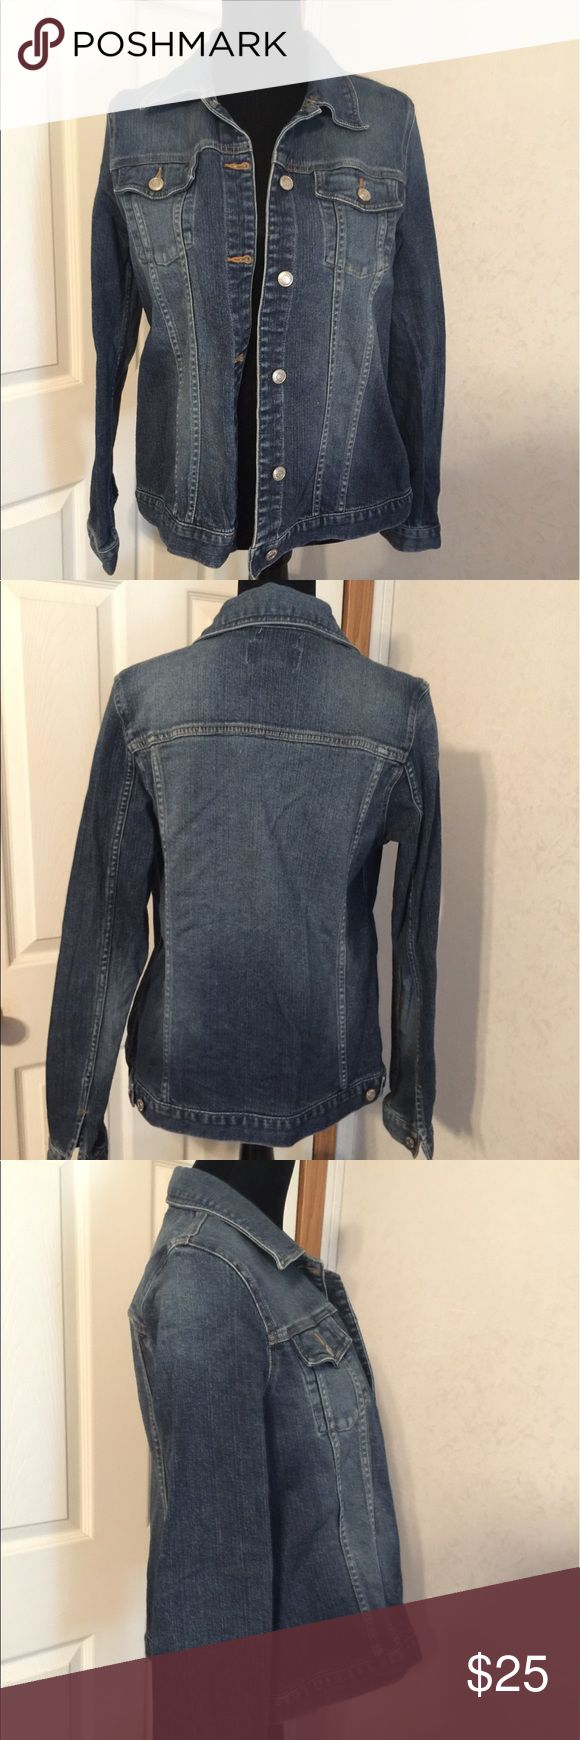 Old Navy Maternity denim jacket size Medium. Old Navy Maternity denim jacket size Medium. This is a great denim jacket. It is in like new condition. Please view all pictures. Old Navy Jackets & Coats Jean Jackets